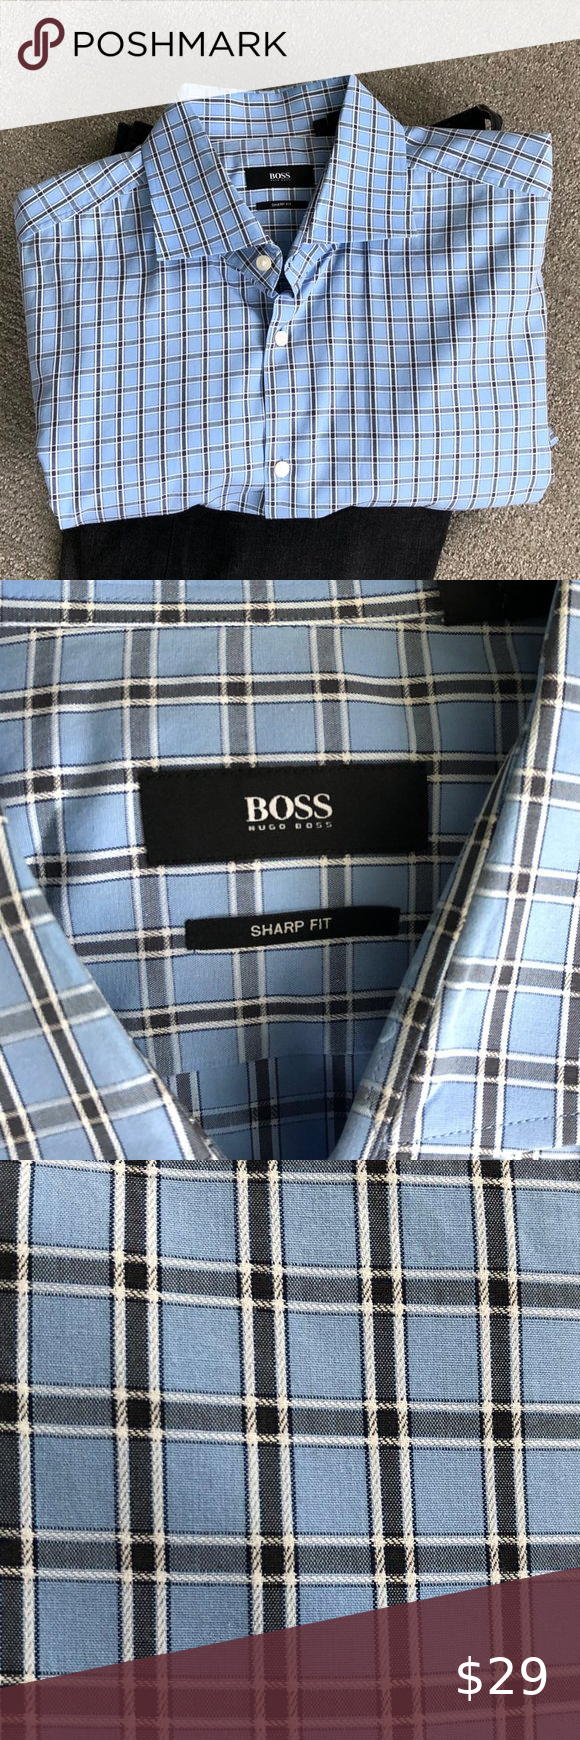 """Men/'s Blue//White Check Long Sleeved Shirt by /'Dimensions/' in size 17.5/"""""""